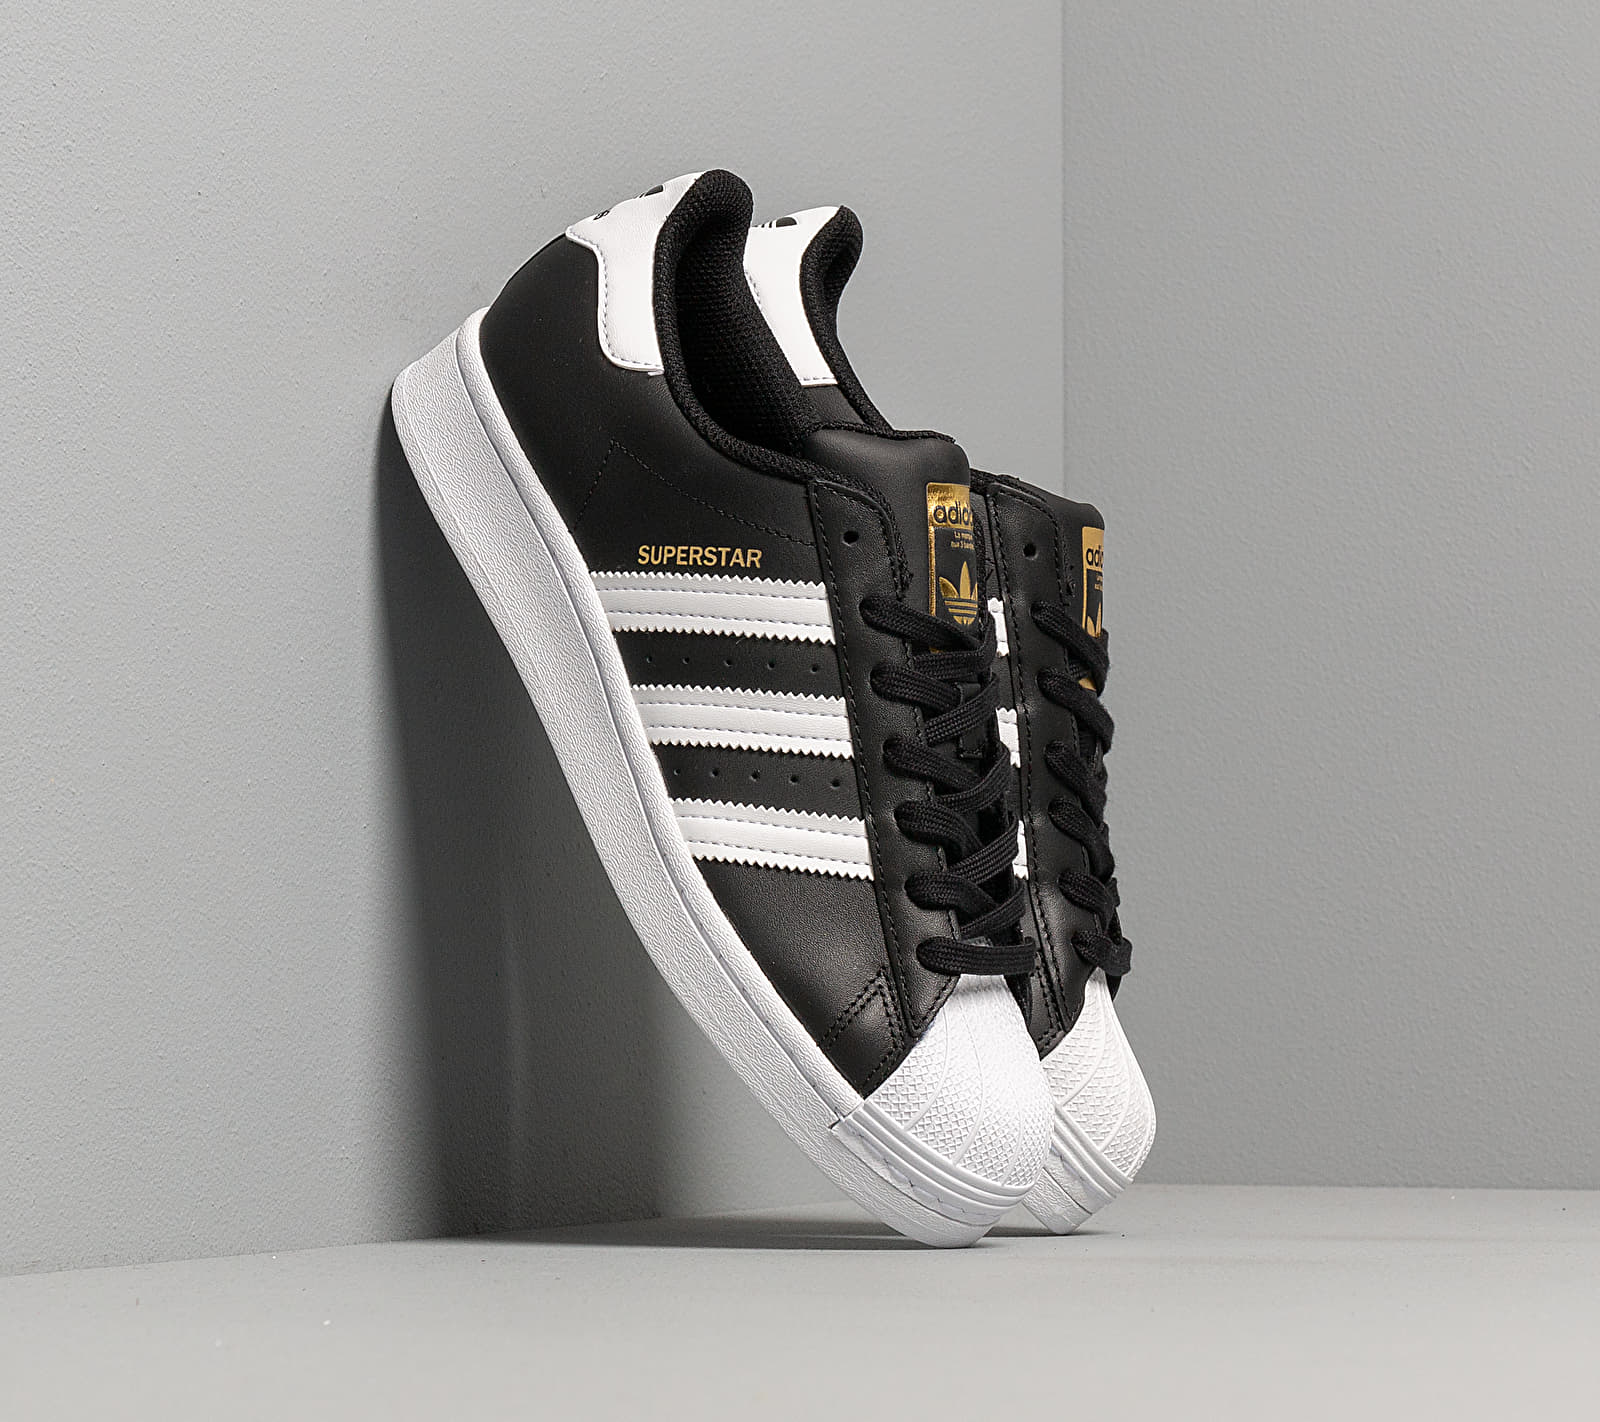 adidas Superstar W Core Black/ Ftw White/ Core Black EUR 38